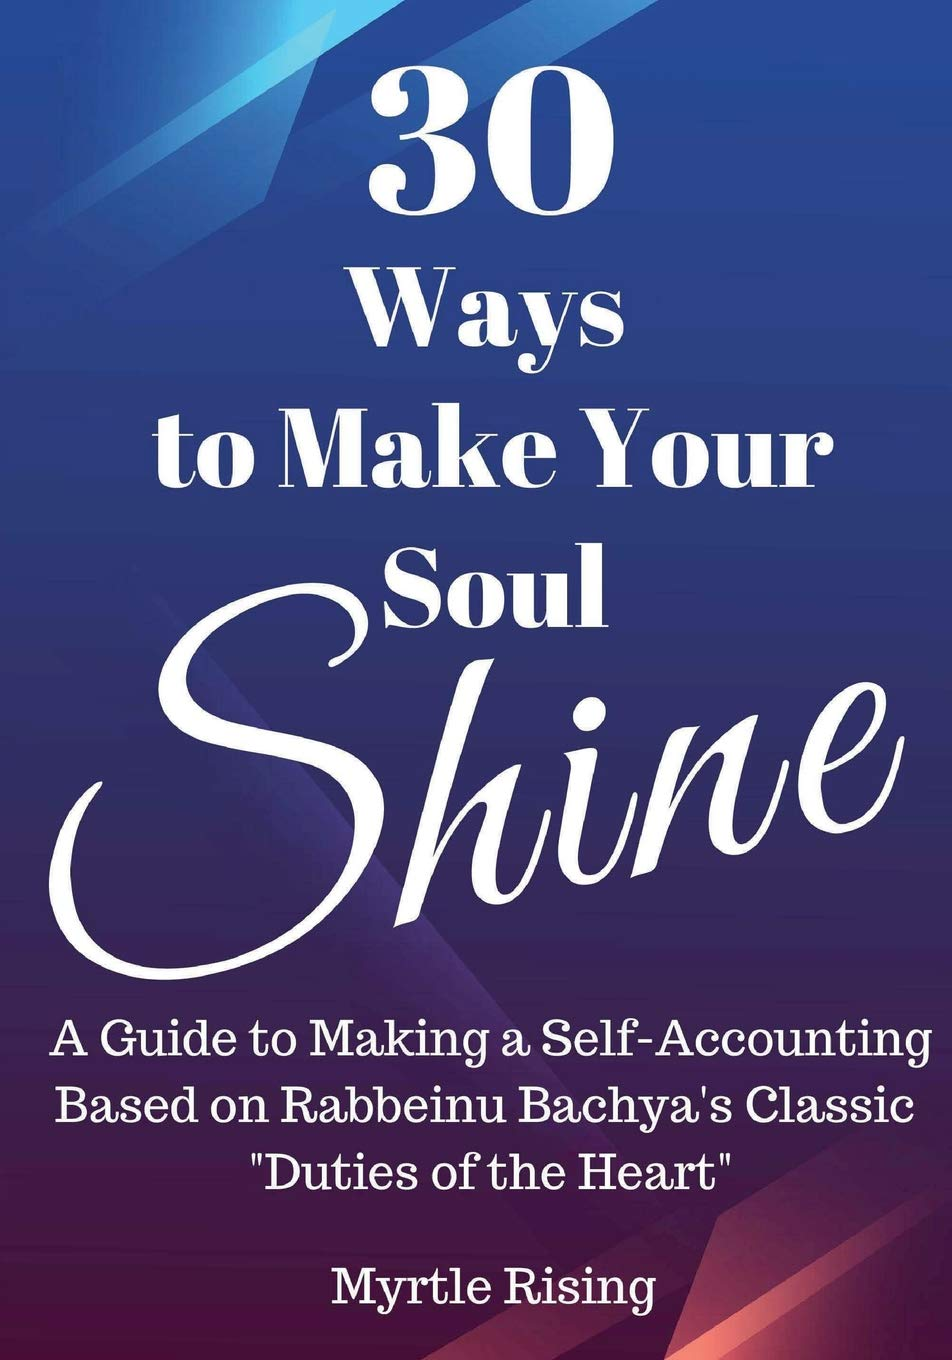 "30 Ways to Make Your Soul Shine: A Workbook Guide to Making a Self-Accounting Based on Rabbeinu Bachya's Classic ""Duties of the Heart"" pdf"